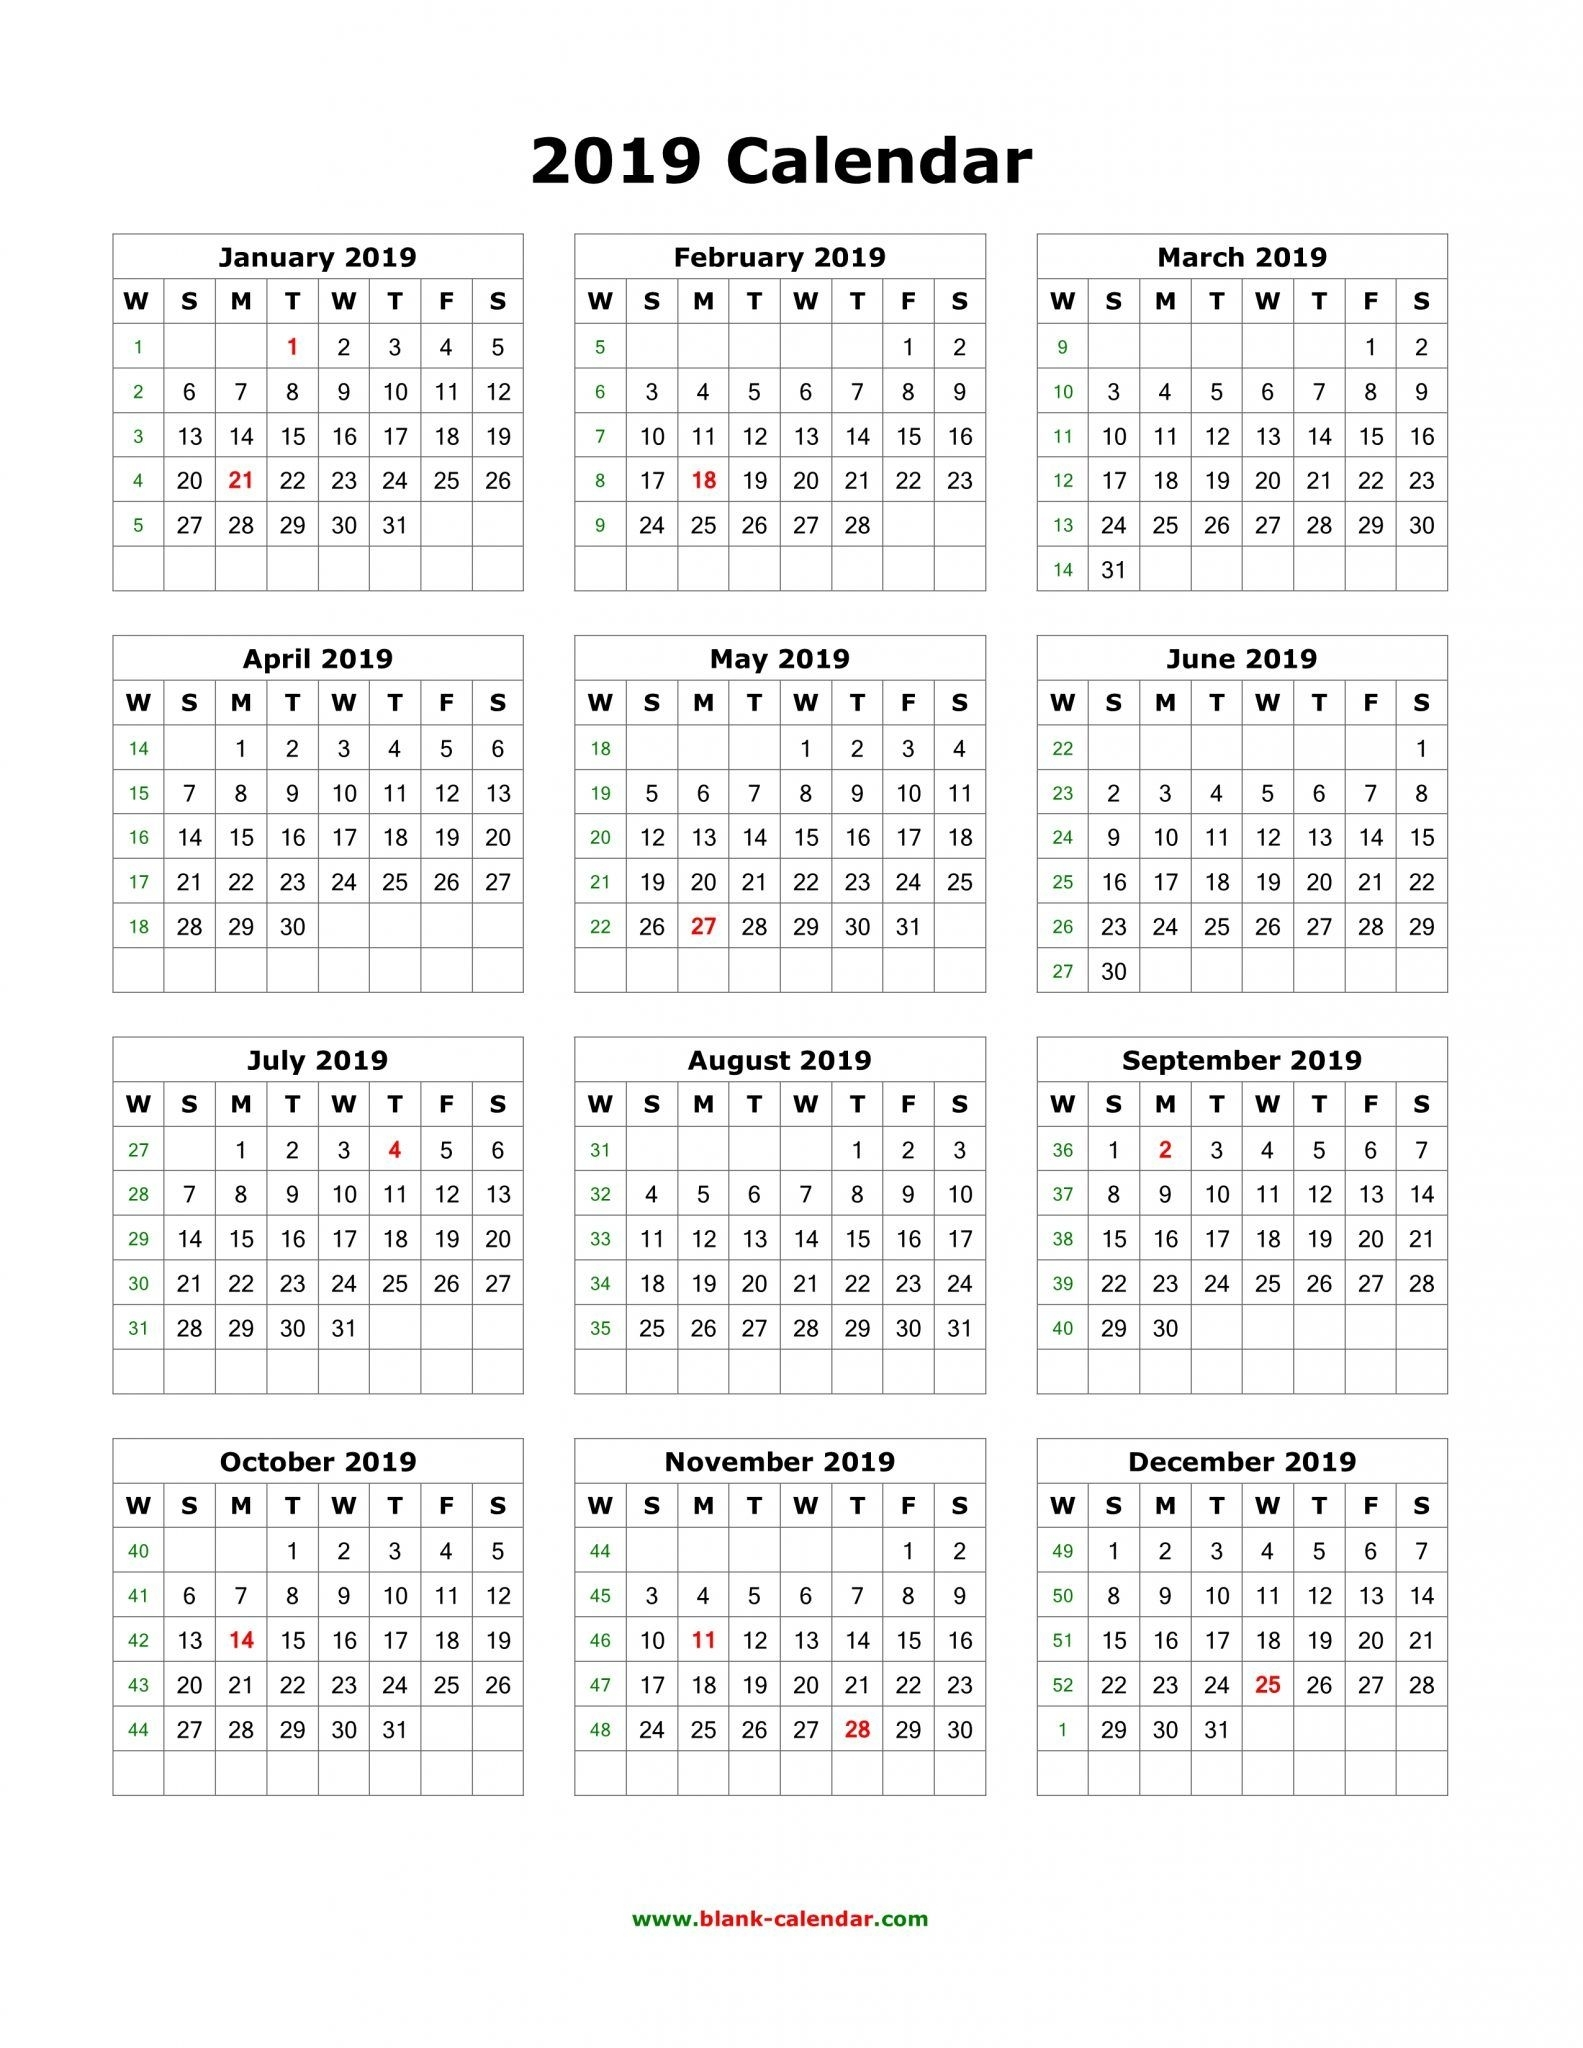 Download Blank 2019 Calendar Templates | 12 Month Calendar In One for 12 Month Calendar With Room For Notes